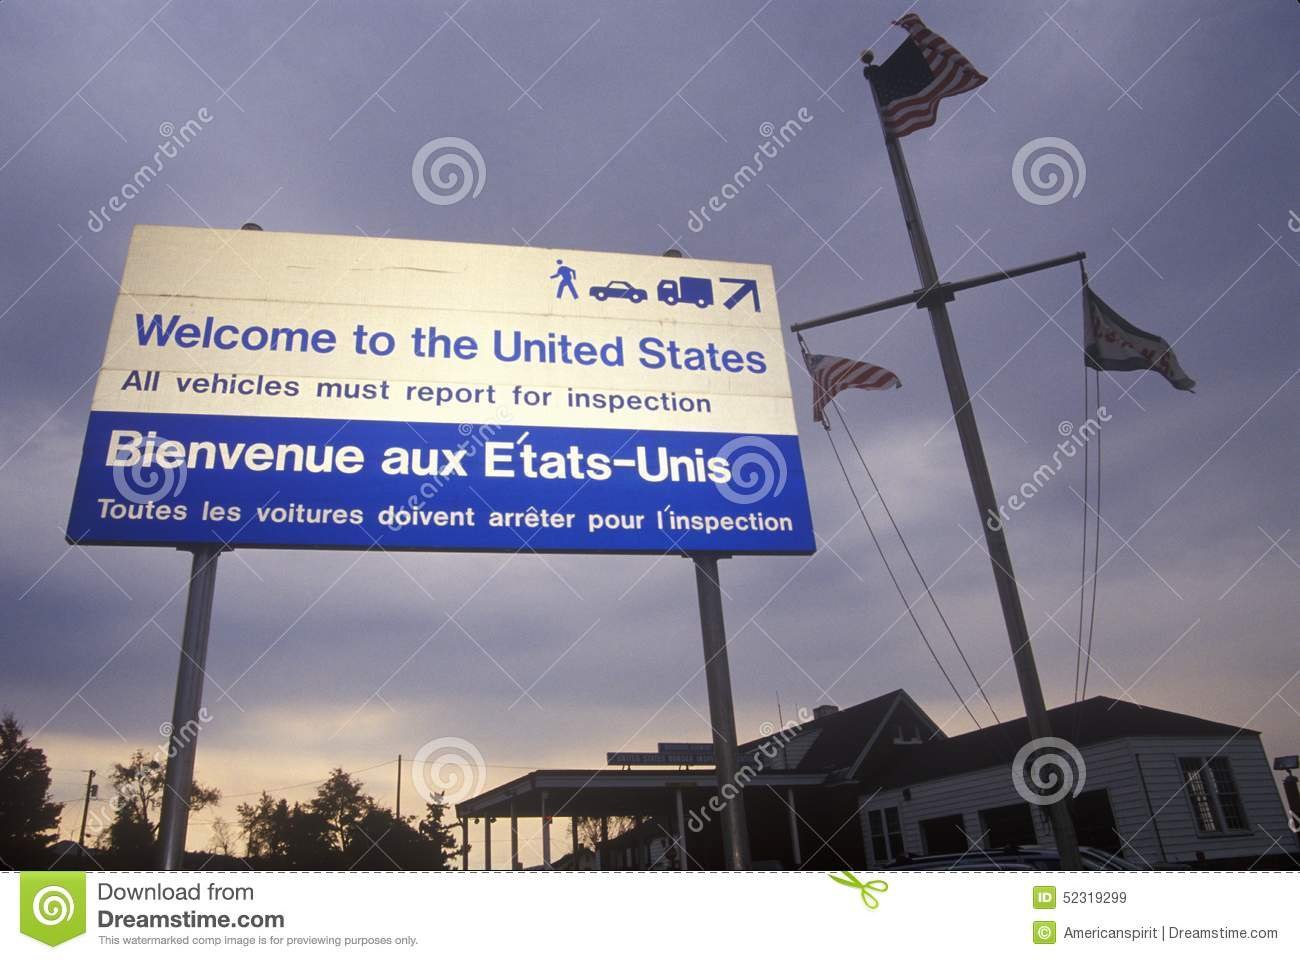 Welcome to United States sign in Richford VT/Canada